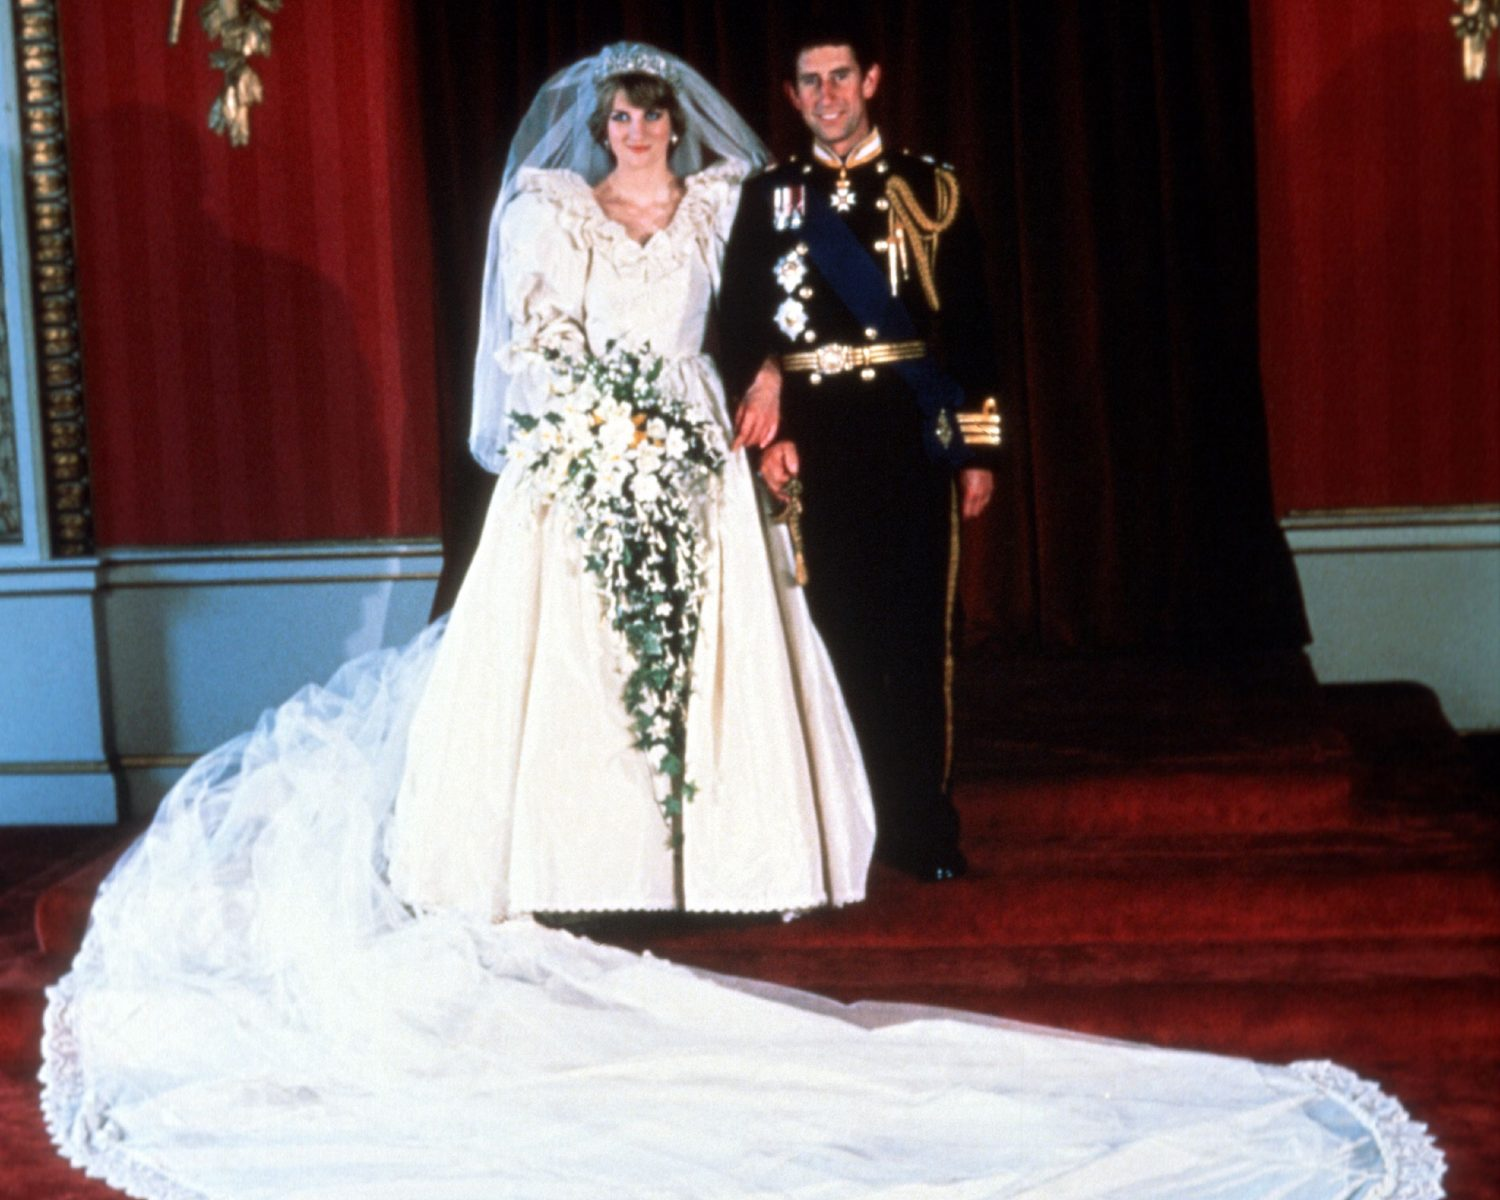 United Kingdom July 29 On 1981 Lady Diana Spencer Aged 19 Married Prince Charles 32 At Buckingham Palace